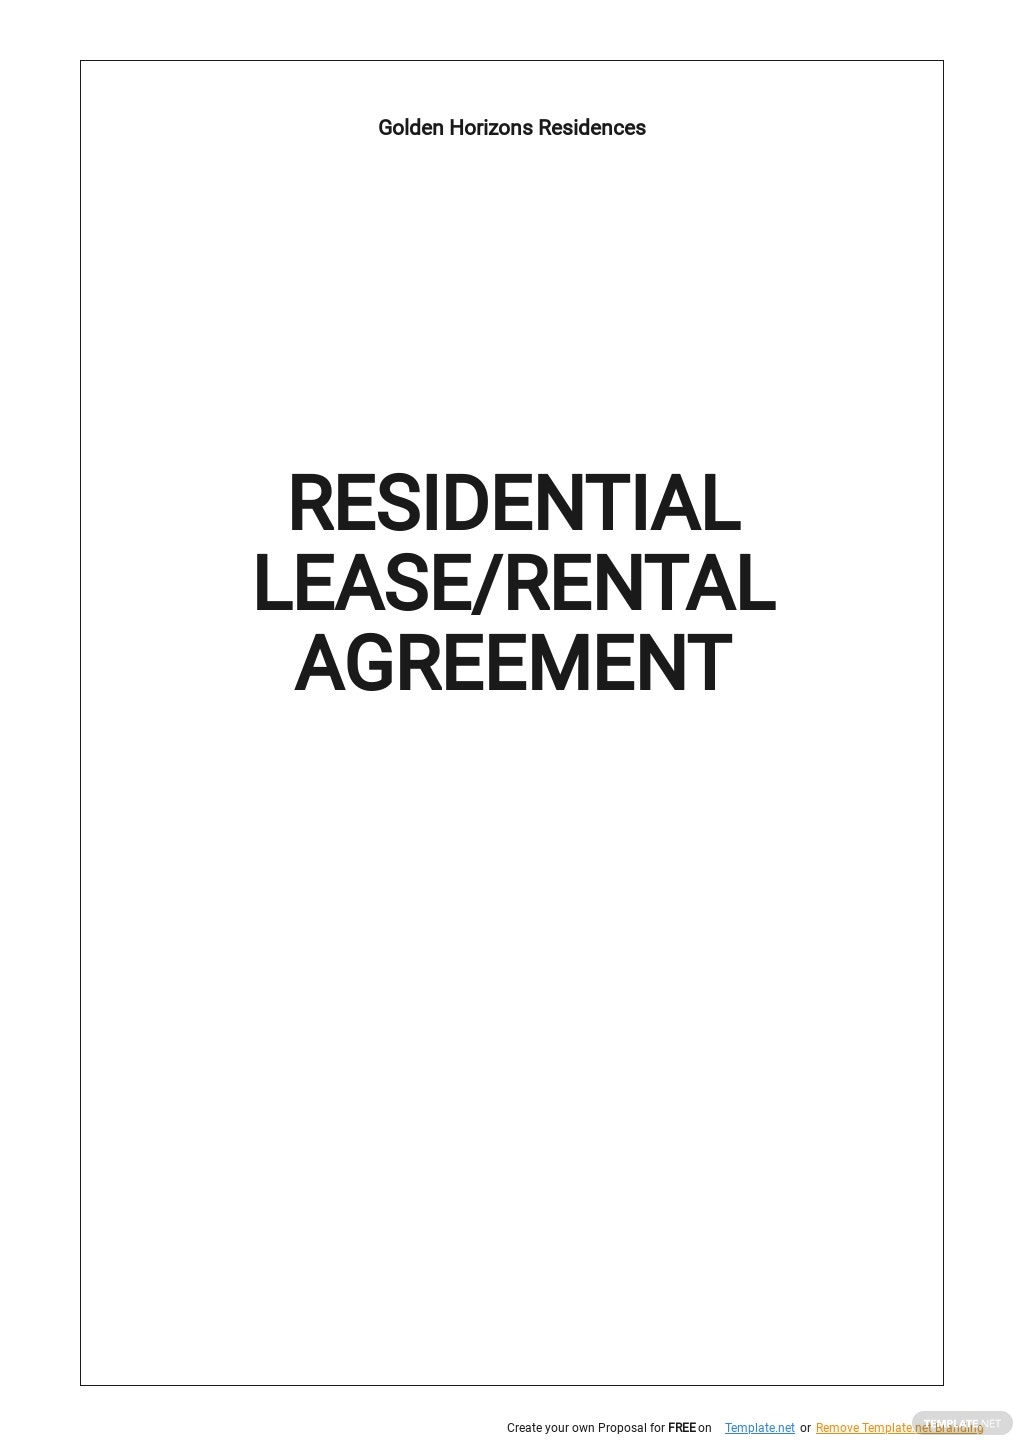 Rental Agreement or Residential Lease Template.jpe